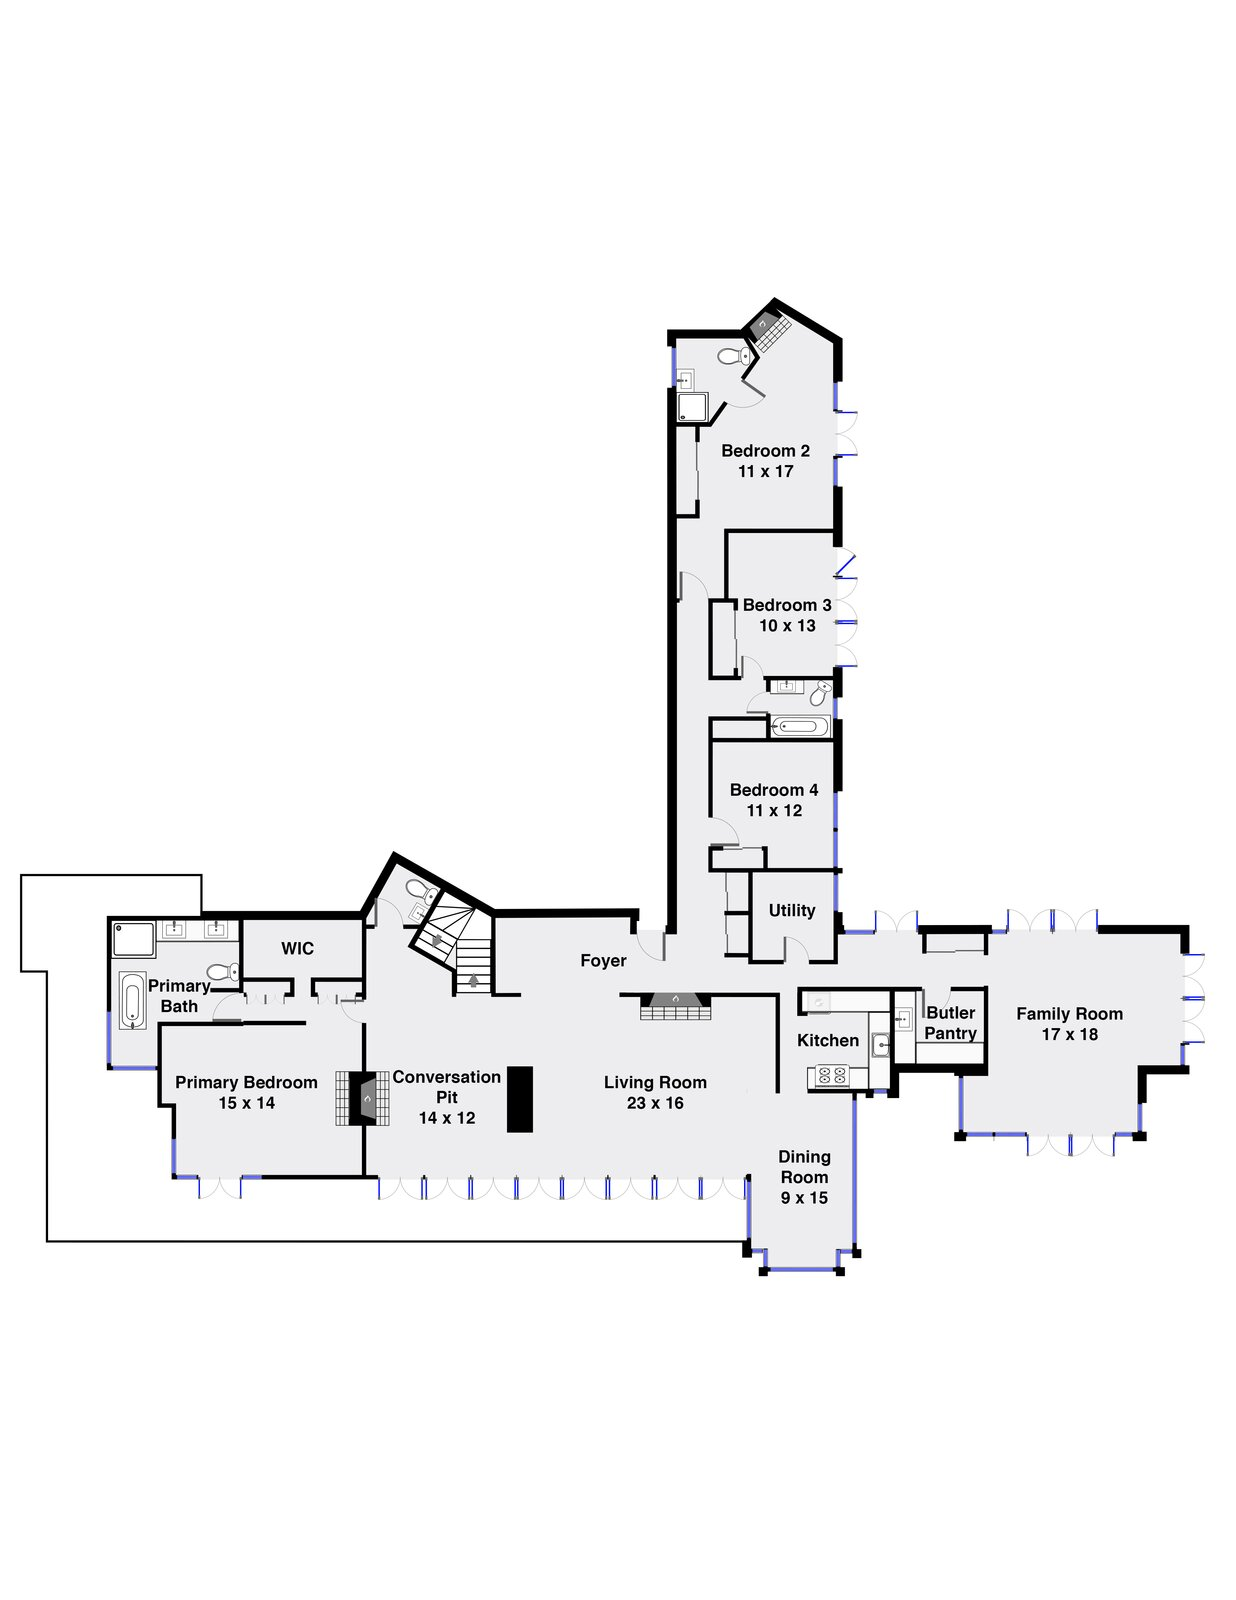 Carr House floor plan  Photo 17 of 17 in For the First Time Ever, This Winsome Illinois Home by Frank Lloyd Wright Is on the Market